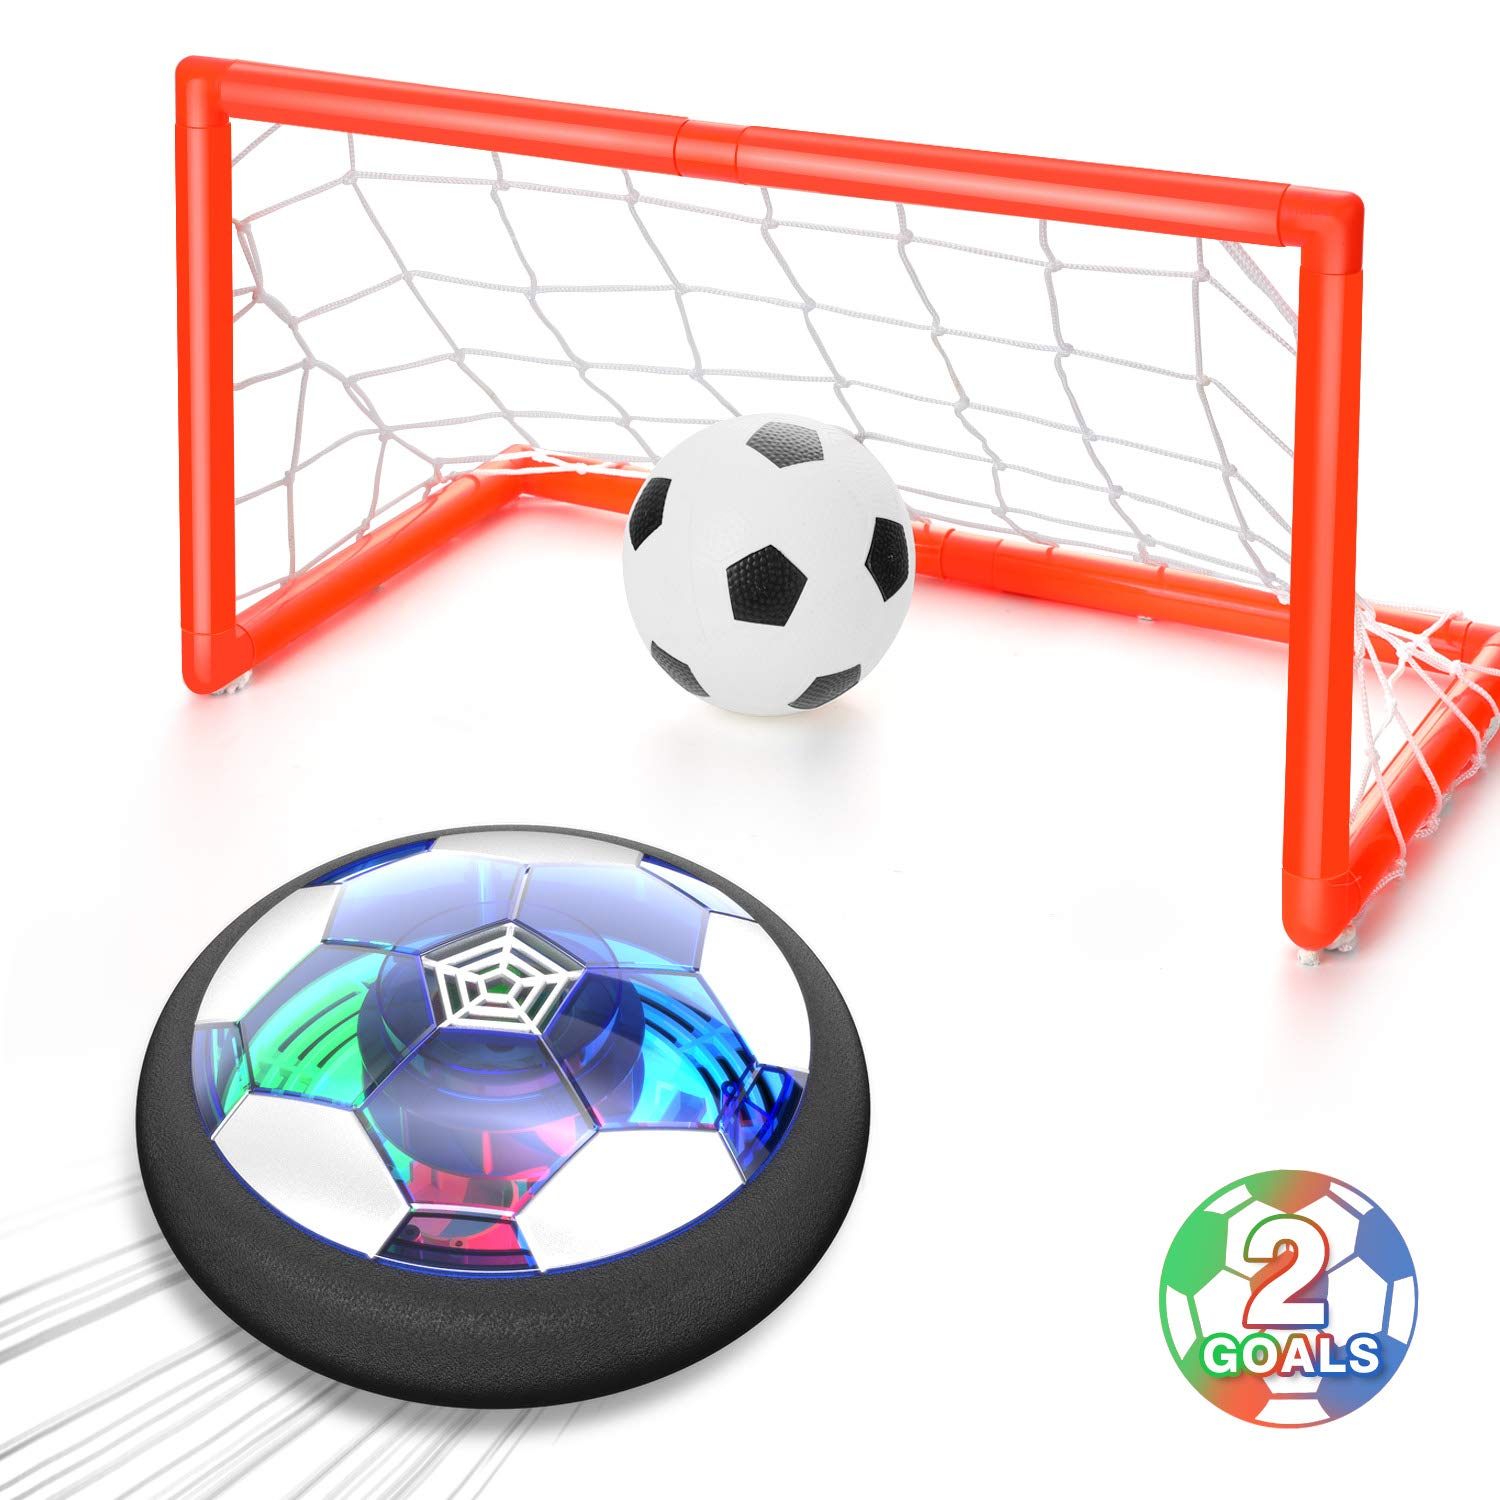 WisToyz Kids Toys Hover Soccer Ball Set Rechargeable Air Soccer, Indoor Soccer Ball with LED Light and Foam Bumper, Toys for Boys, Girls, Toddler, Including an Inflatable Ball (No AA Battery Needed) by WisToyz